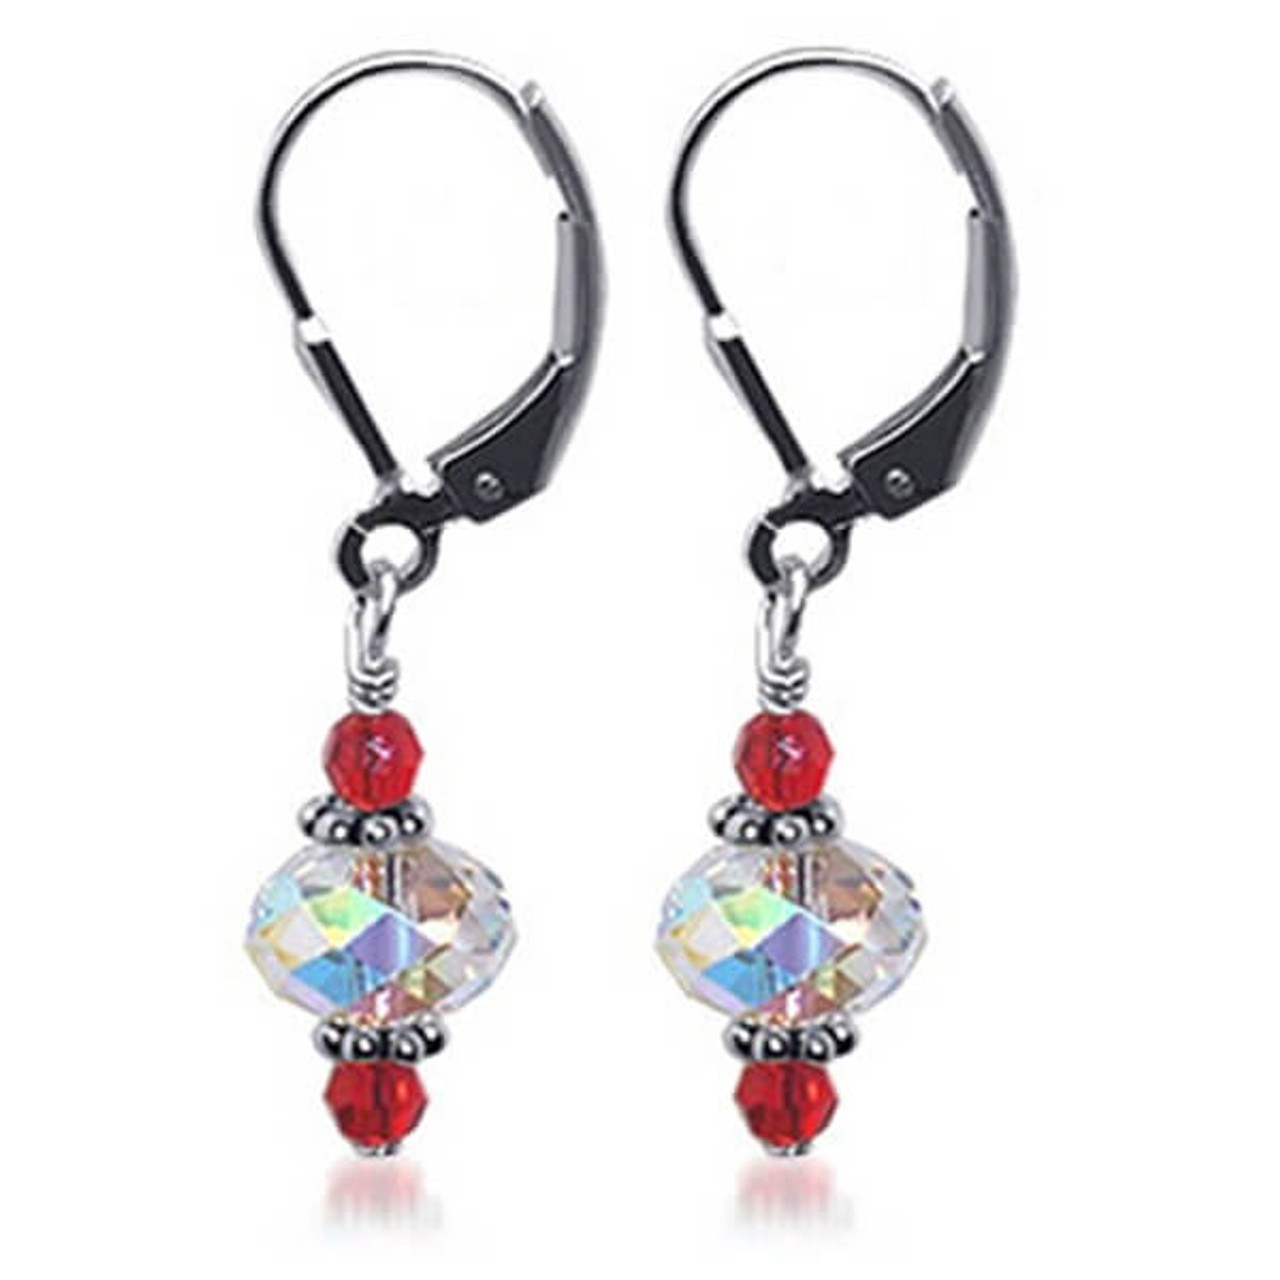 7ff3aa985eef7 925 Silver Made with Swarovski Elements Red and Clear Crystal Handmade  Leverback Drop Earrings